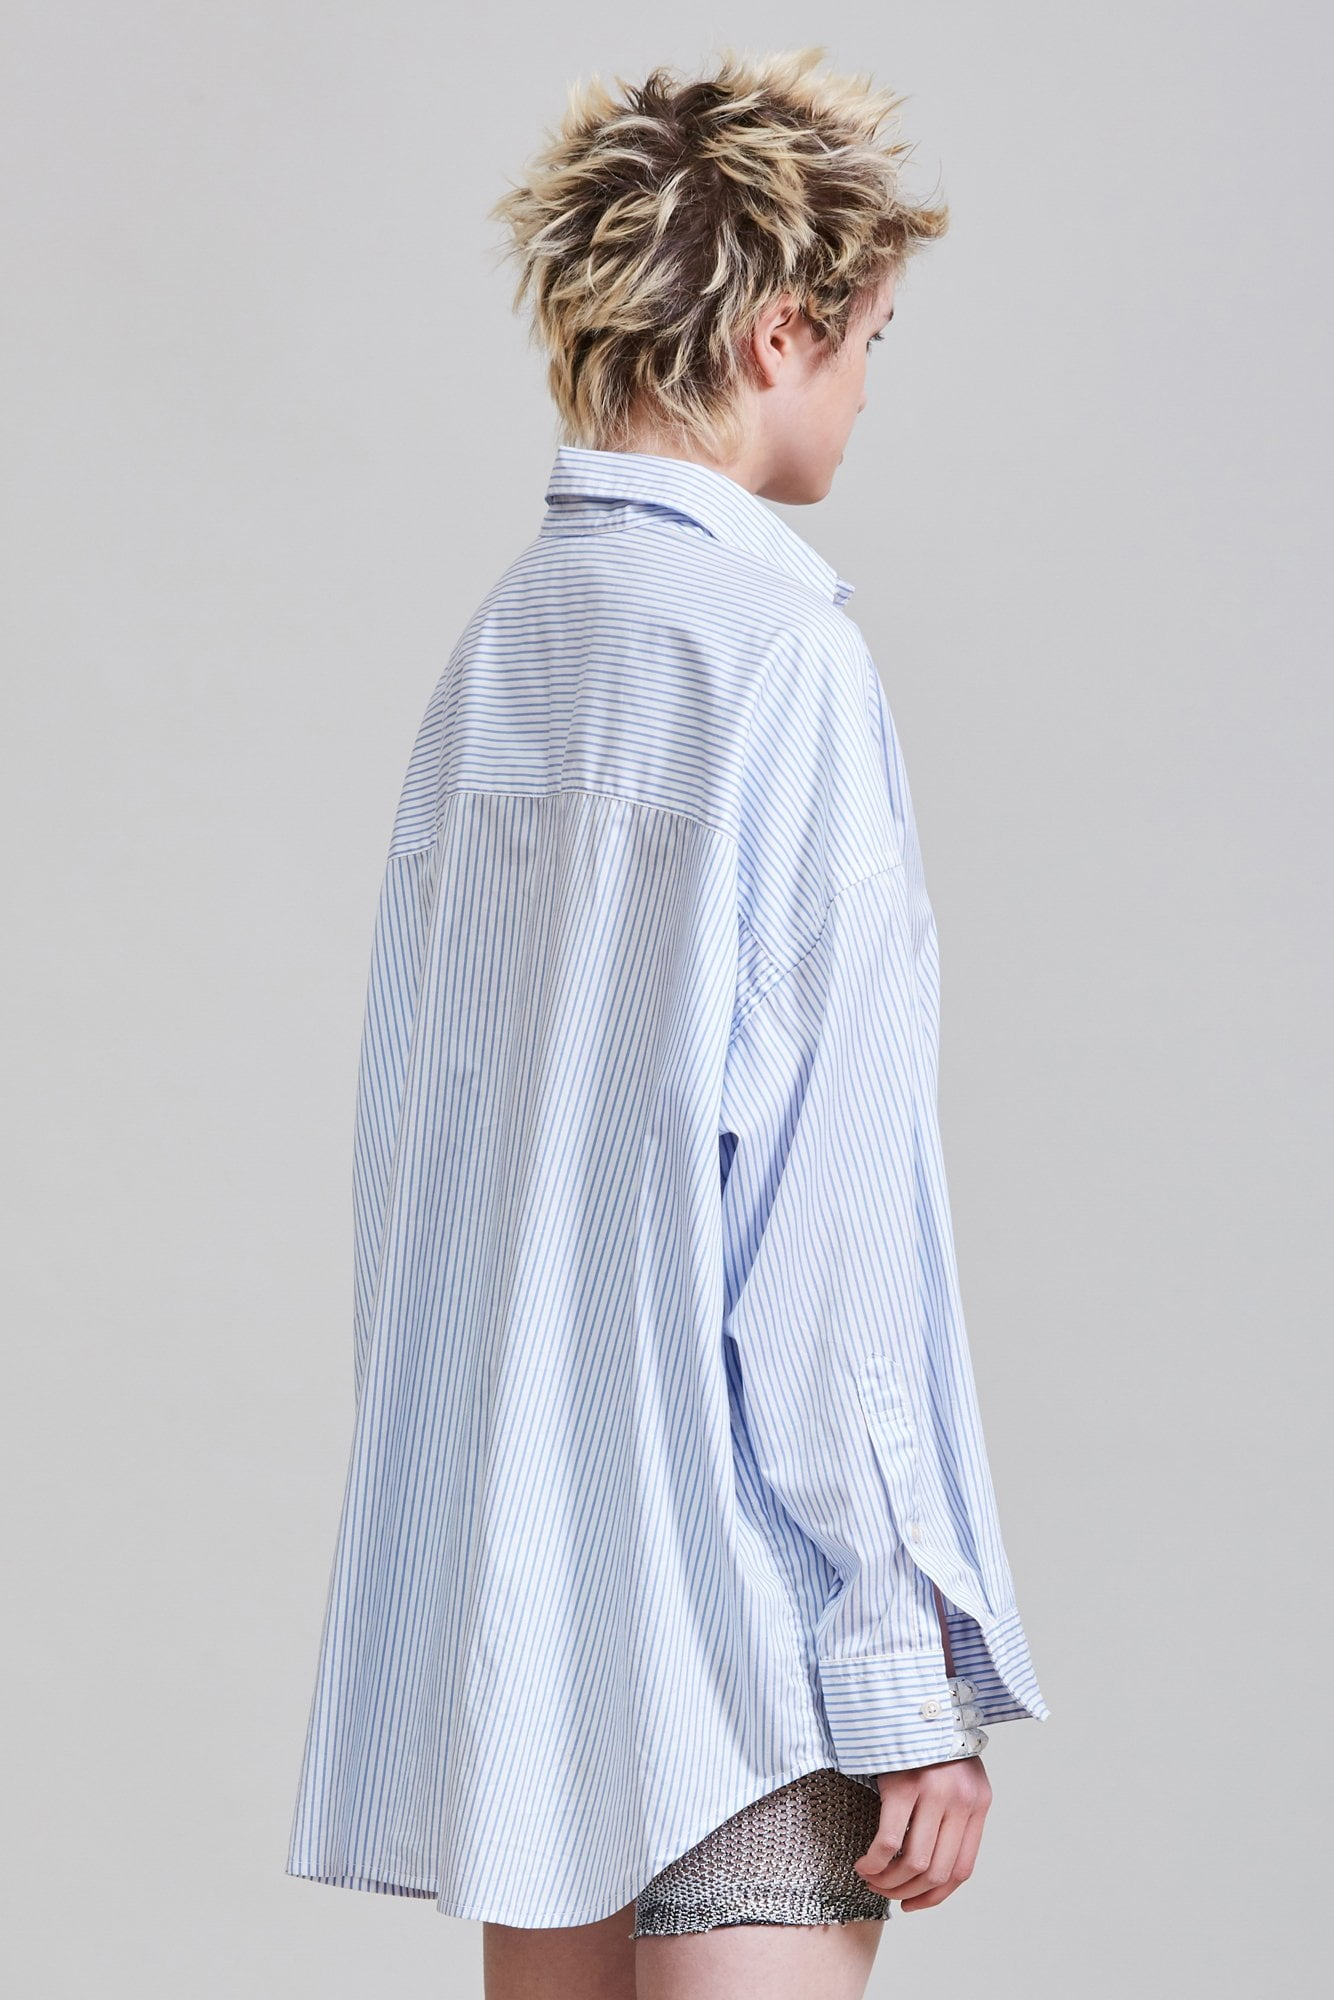 OVERSIZED BUTTON UP SHIRT - BLUE STRIPE